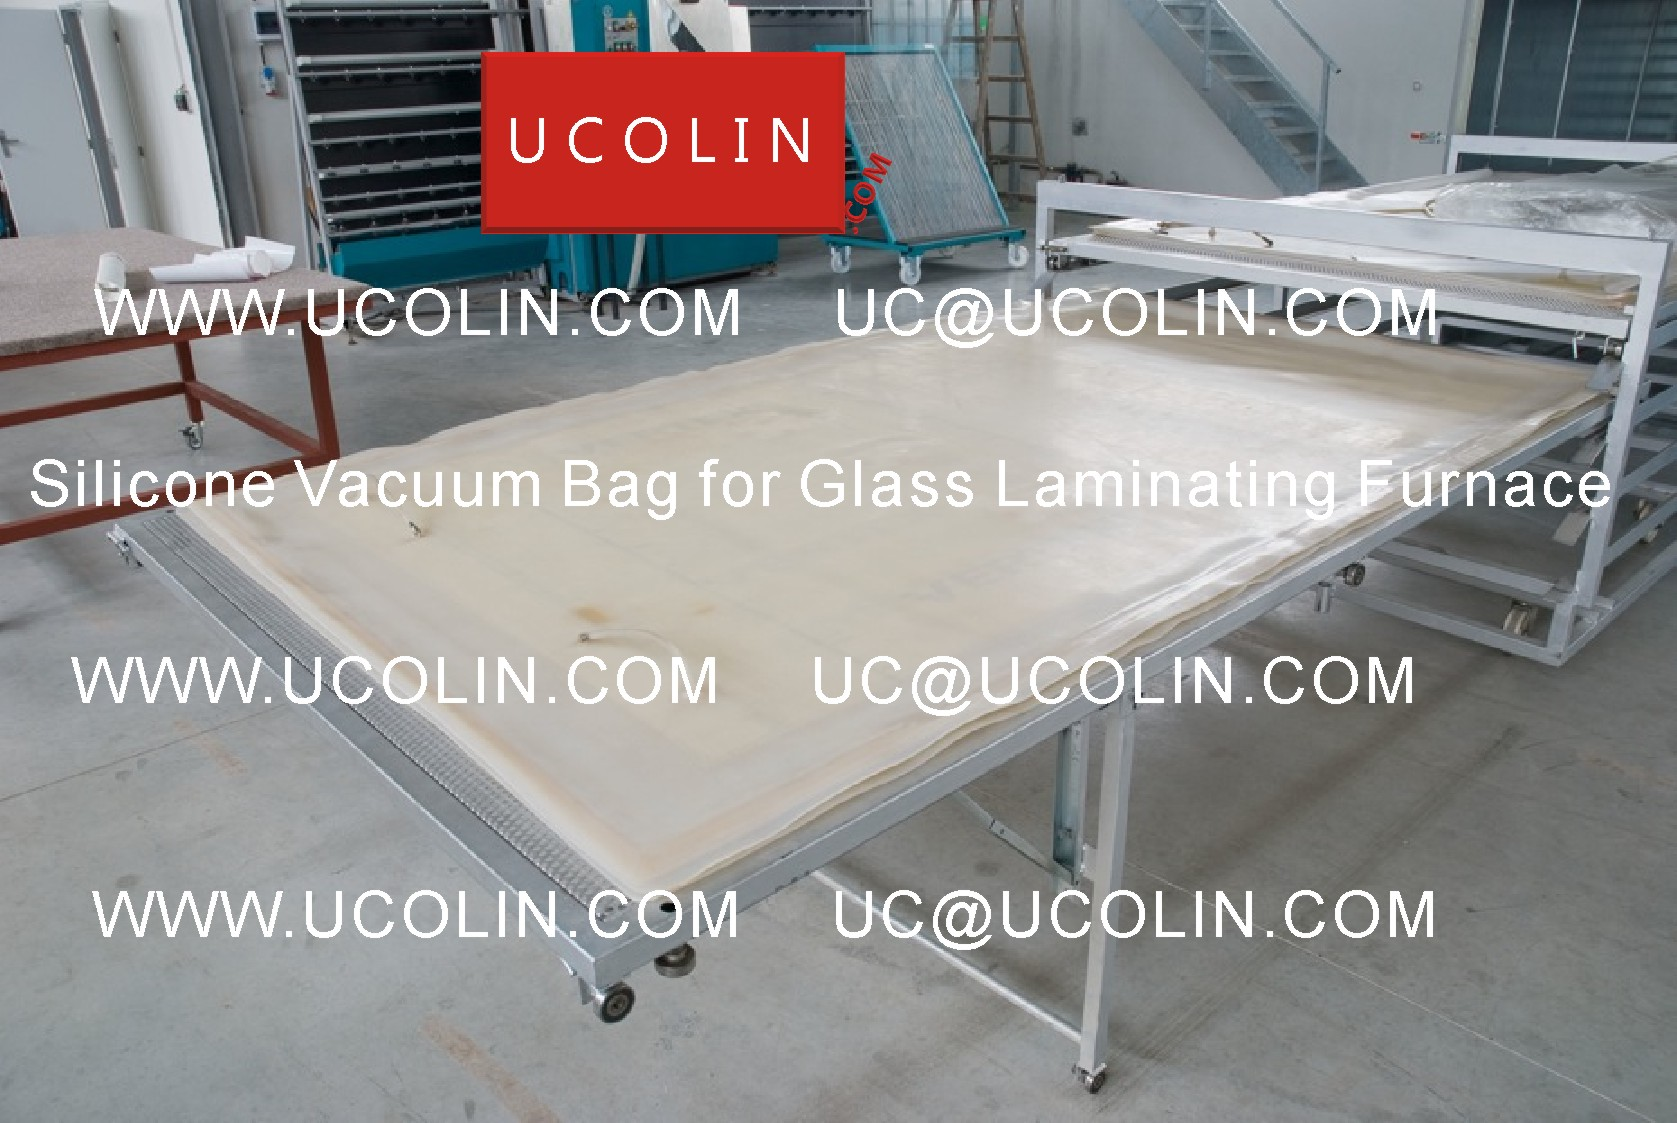 03 Application G Silicone Vacuum Bag for Safety Glass Laminating Furnace